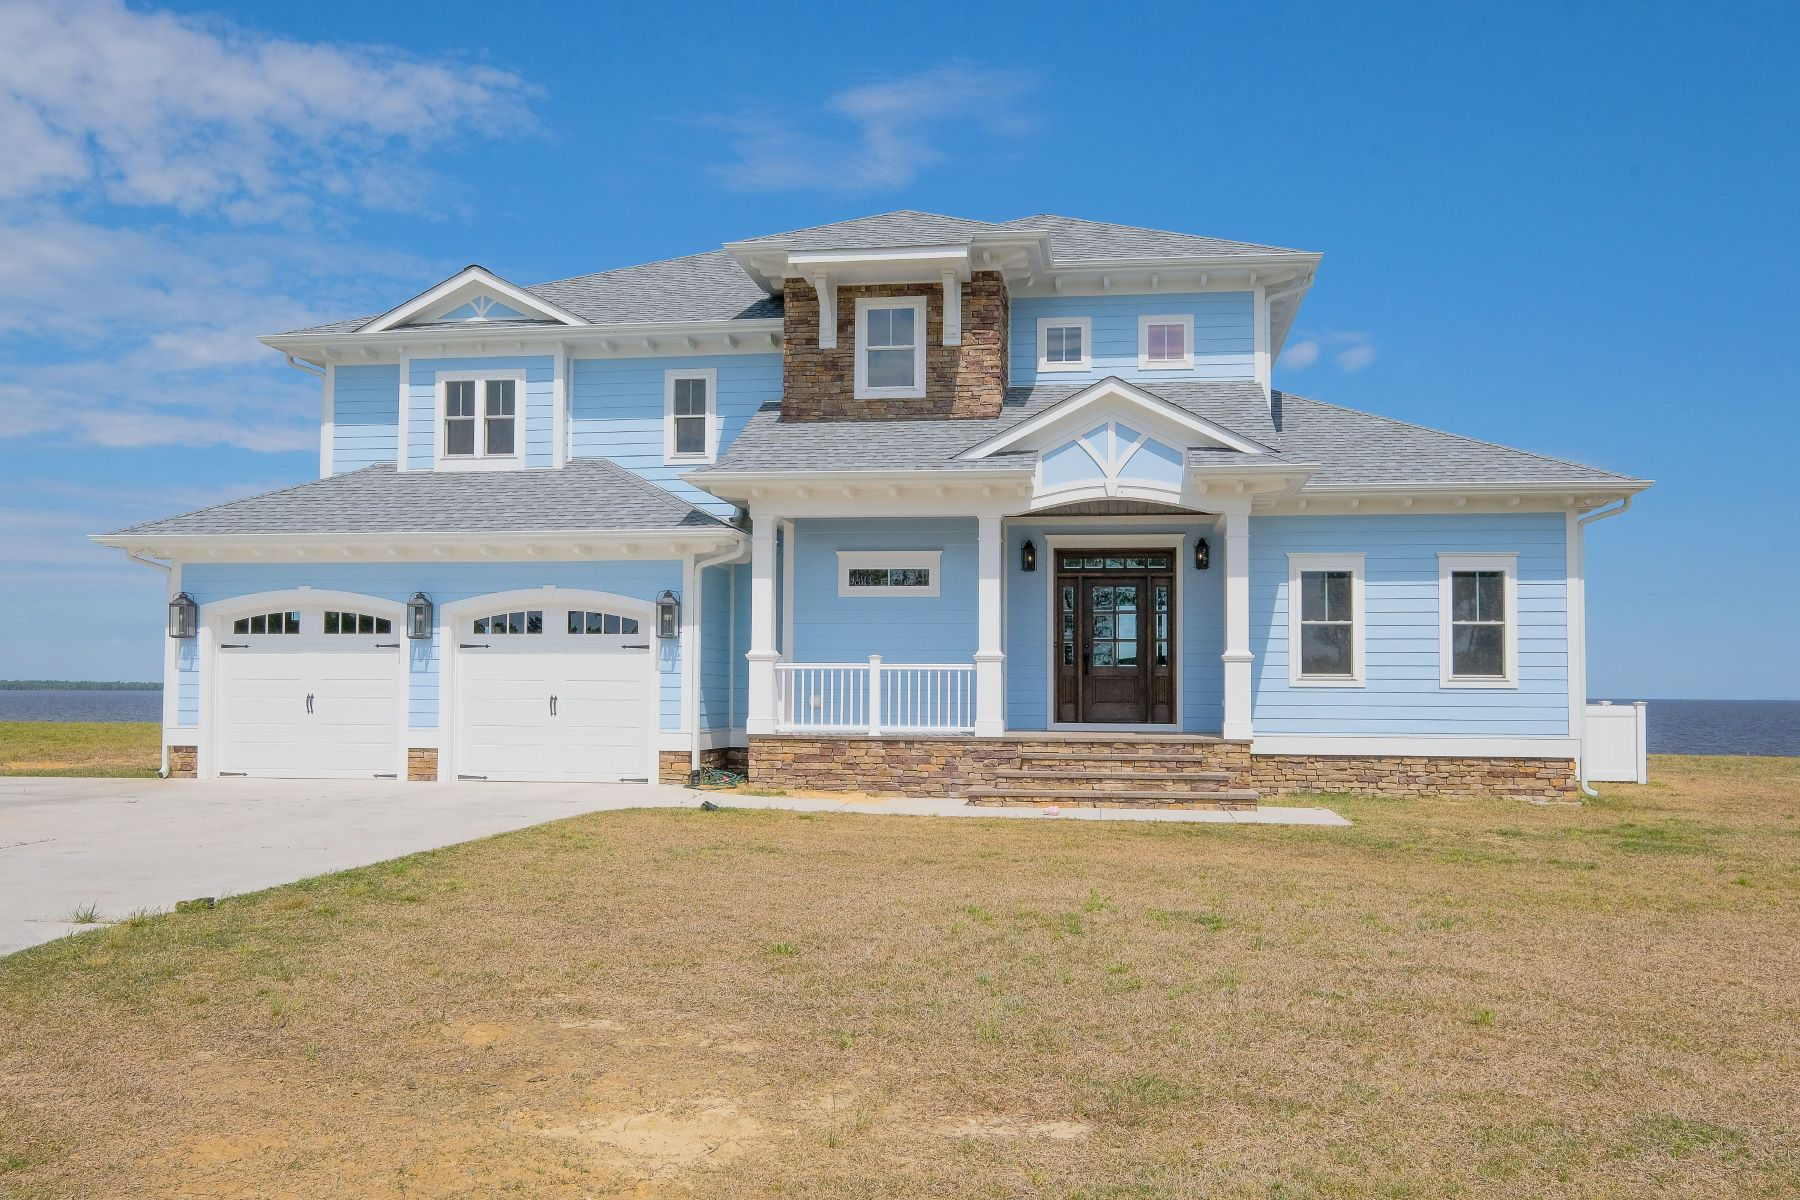 Single Family Homes for Sale at NEW BUILD - WATERFRONT & GOLF COURSE!! 119 Kingsview Ct Merry Hill, North Carolina 27957 United States